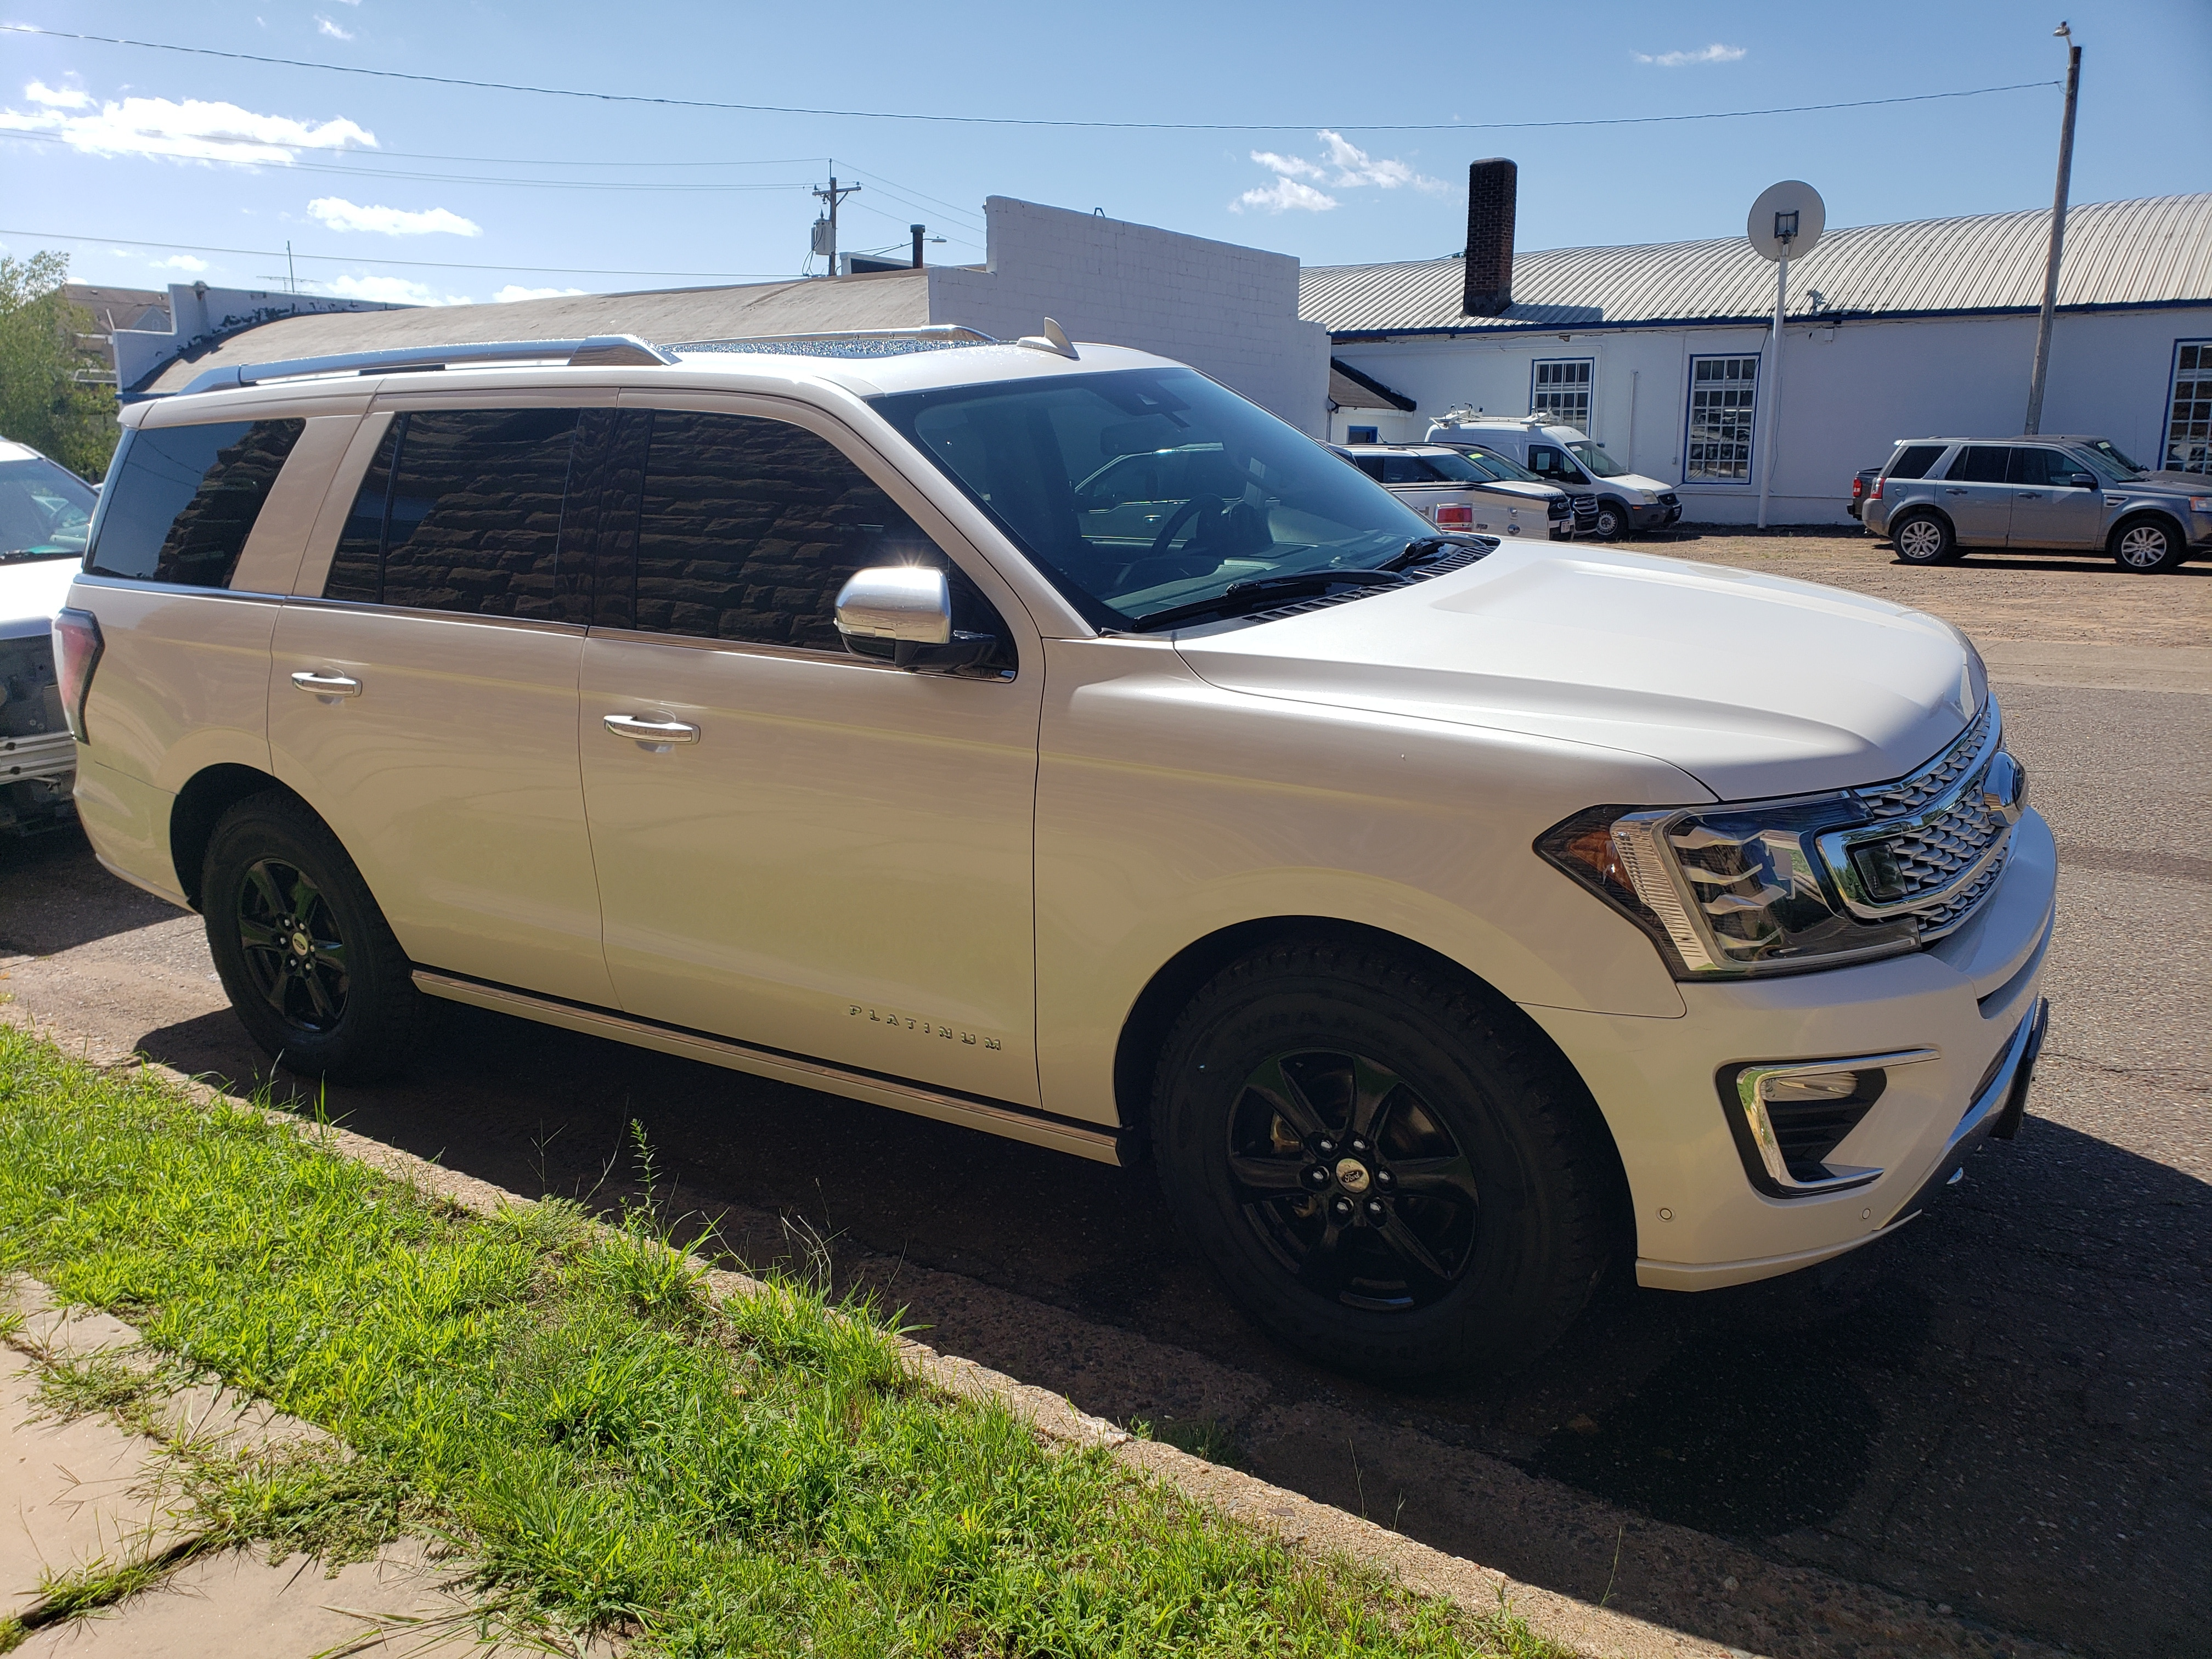 Used 2018 Ford Expedition Platinum with VIN 1FMJU1MTXJEA68308 for sale in Sandstone, Minnesota